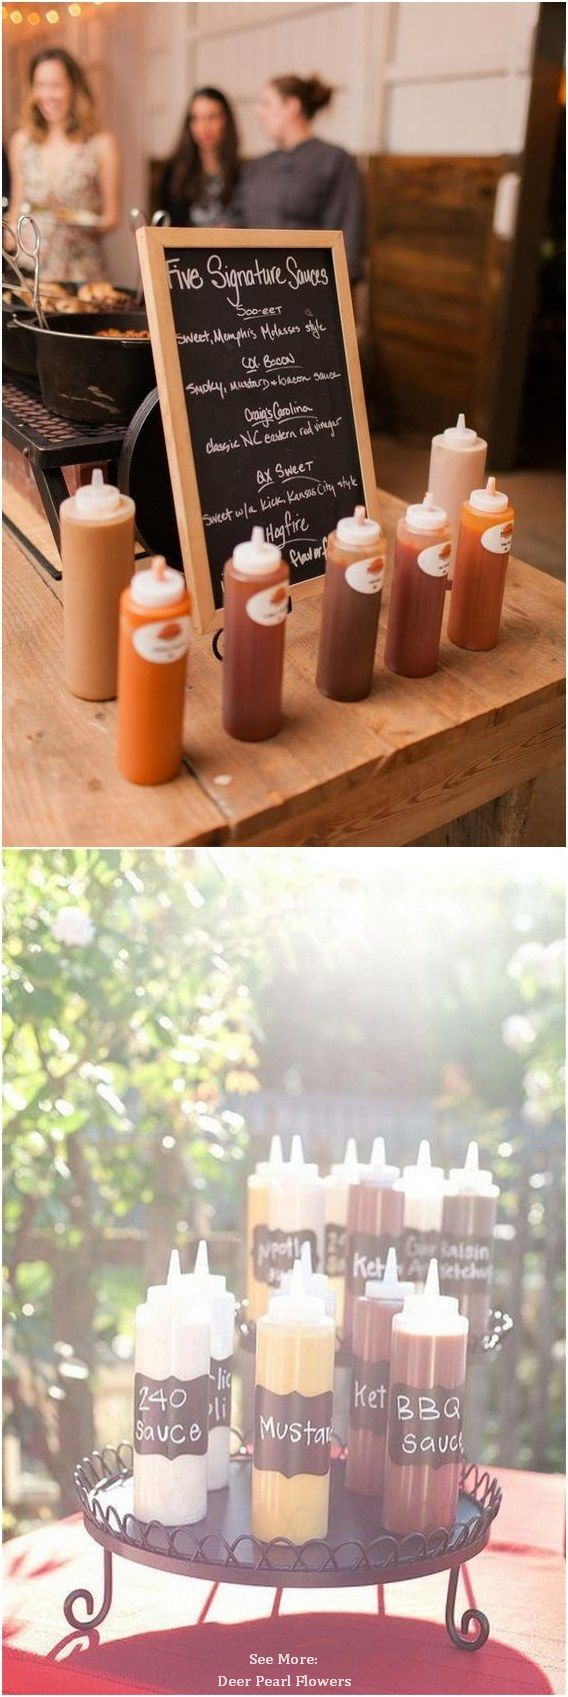 Best 25 Rustic Home Decorating Ideas On Pinterest: Top 25 Rustic Barbecue BBQ Wedding Ideas